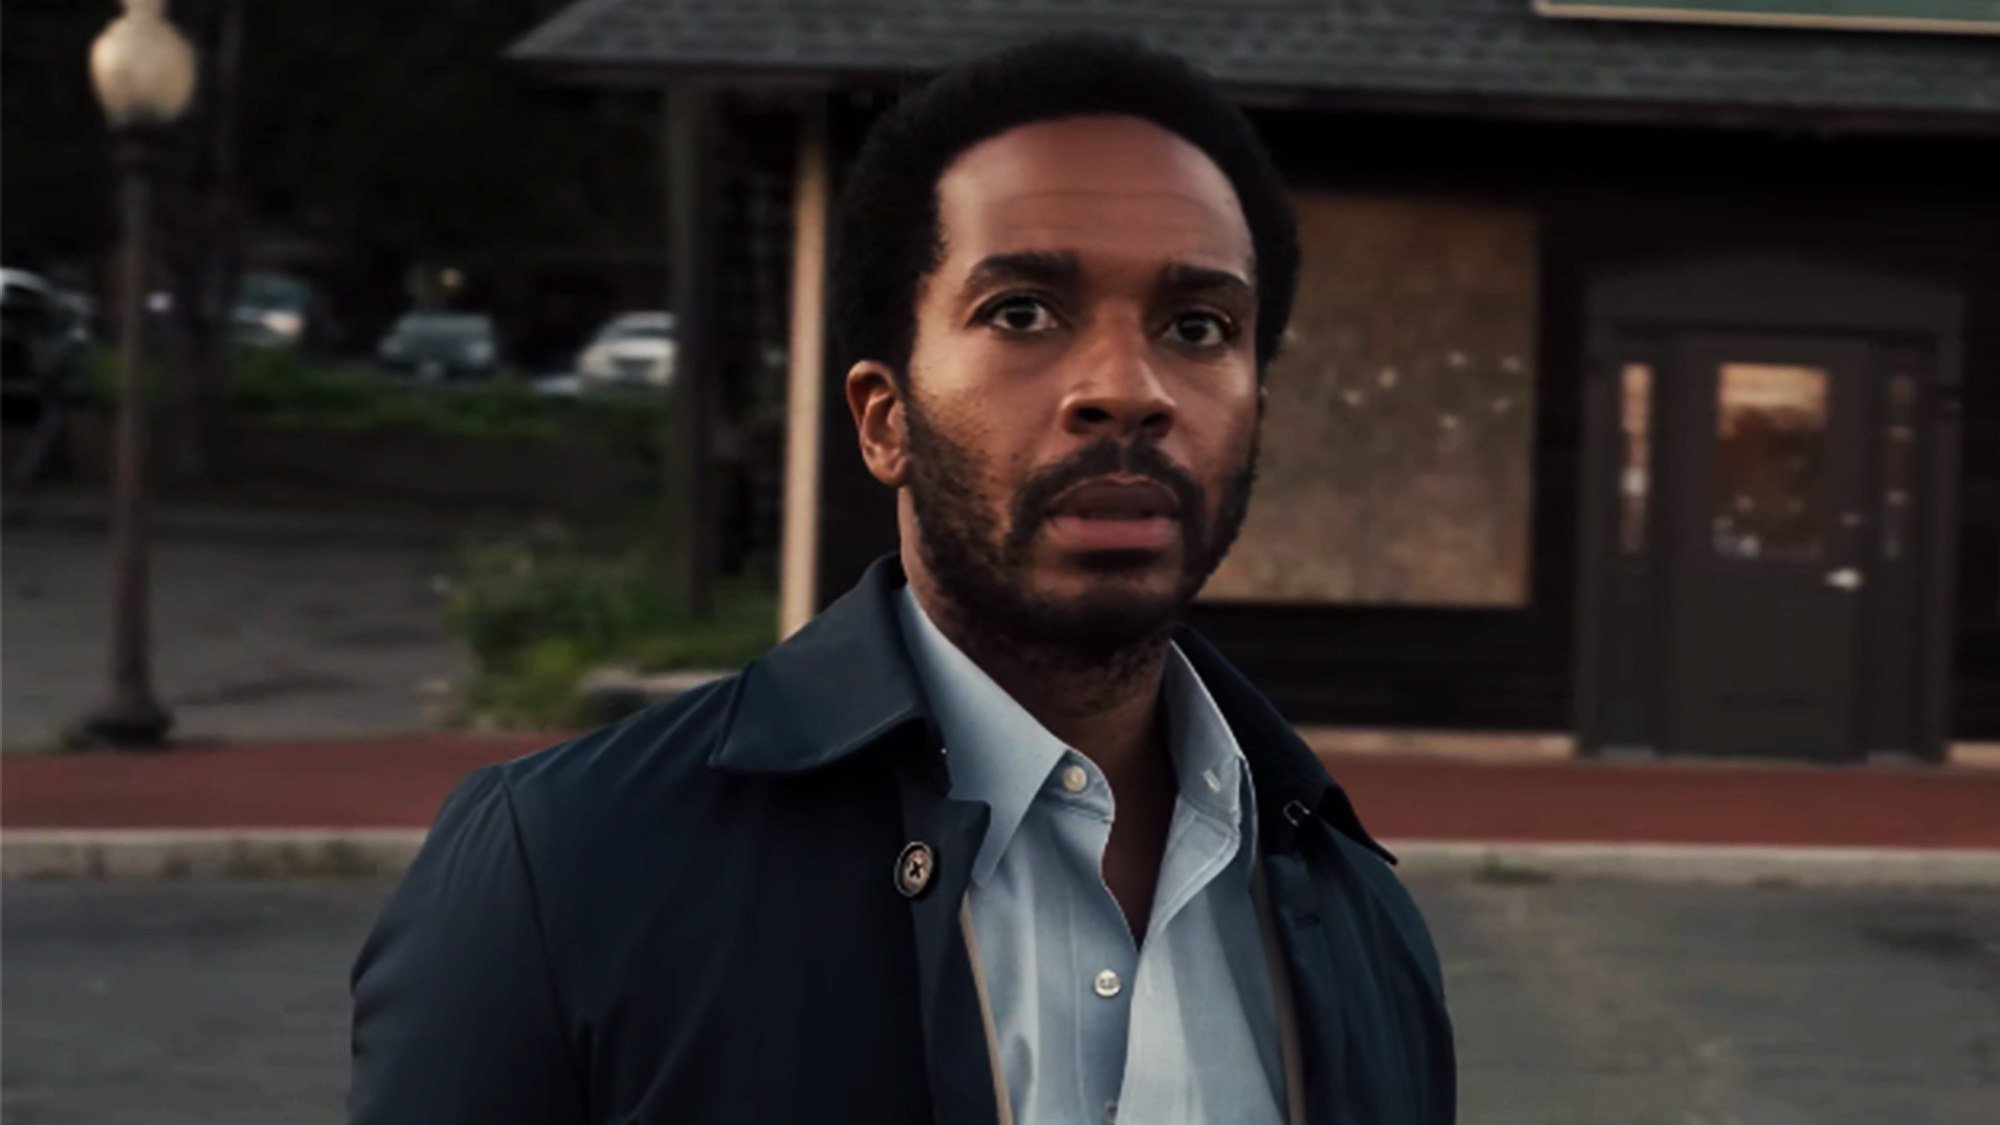 .@Hulu's #CastleRock is a scary-good Stephen King adaptation https://t.co/mutZ6W22pw https://t.co/QcEIYFNQLU